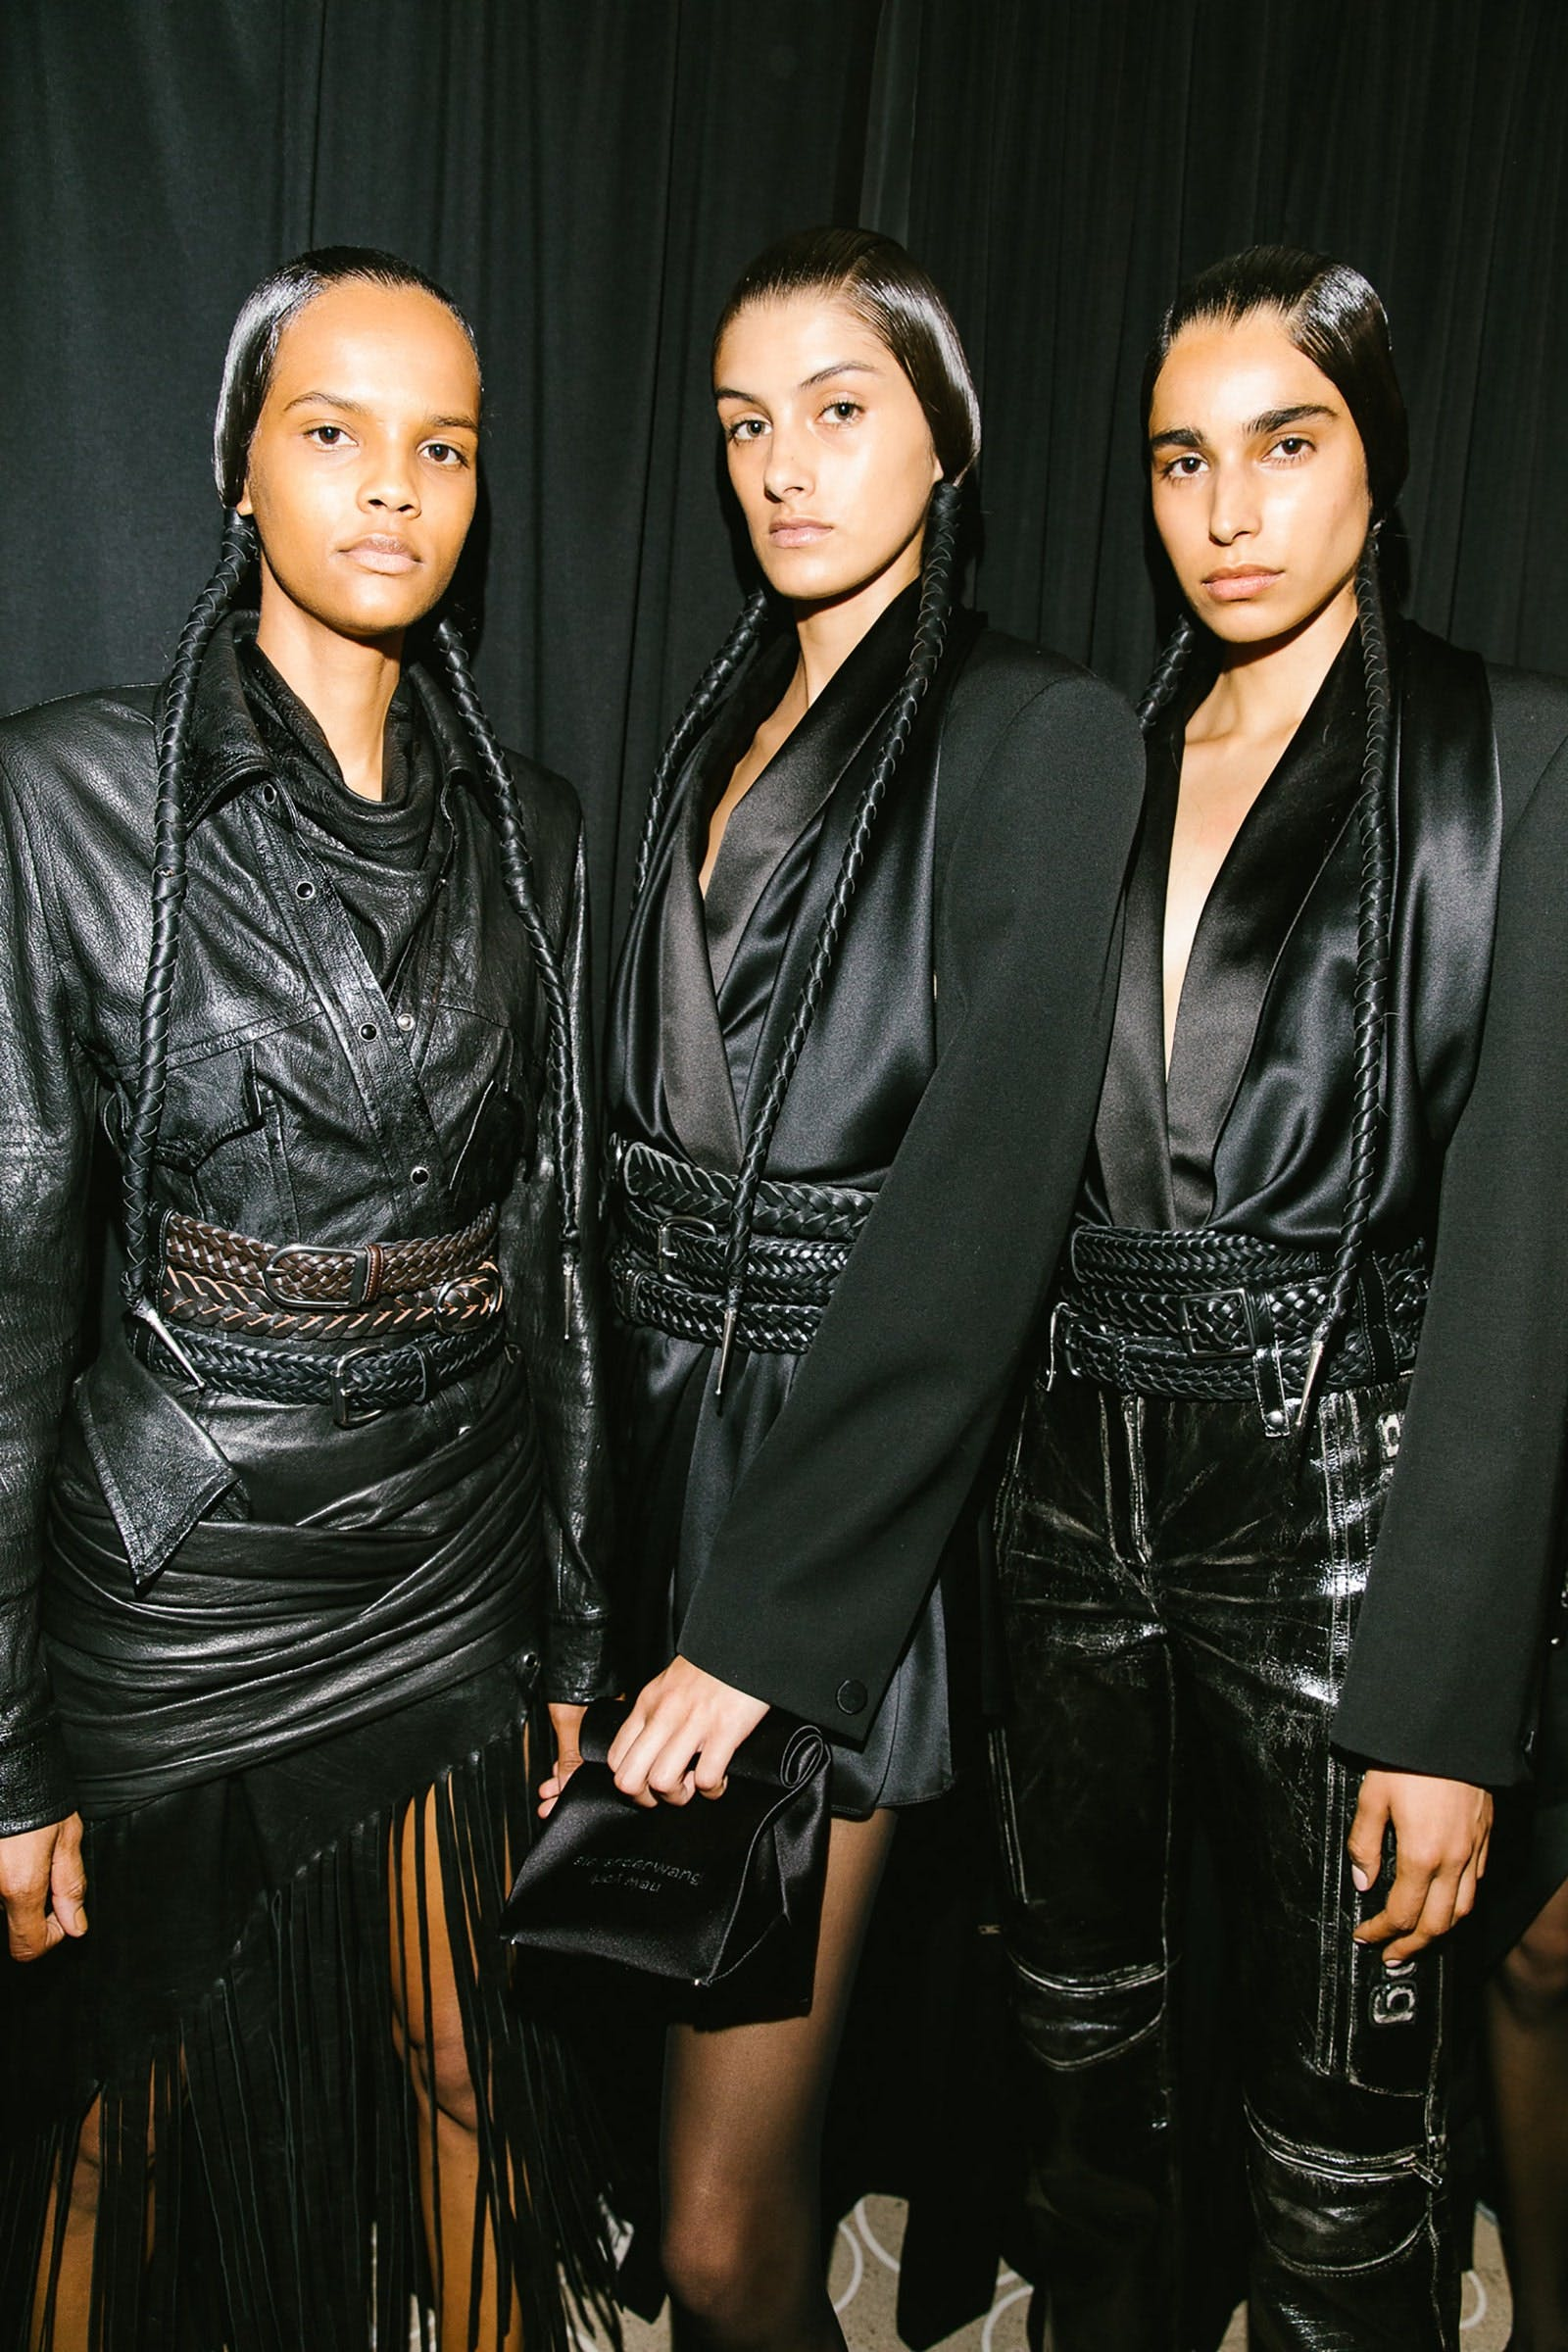 Alexander Wang Backstage Models in Padded Tuxedo Blazer and Black Leather Spring 20 RTW